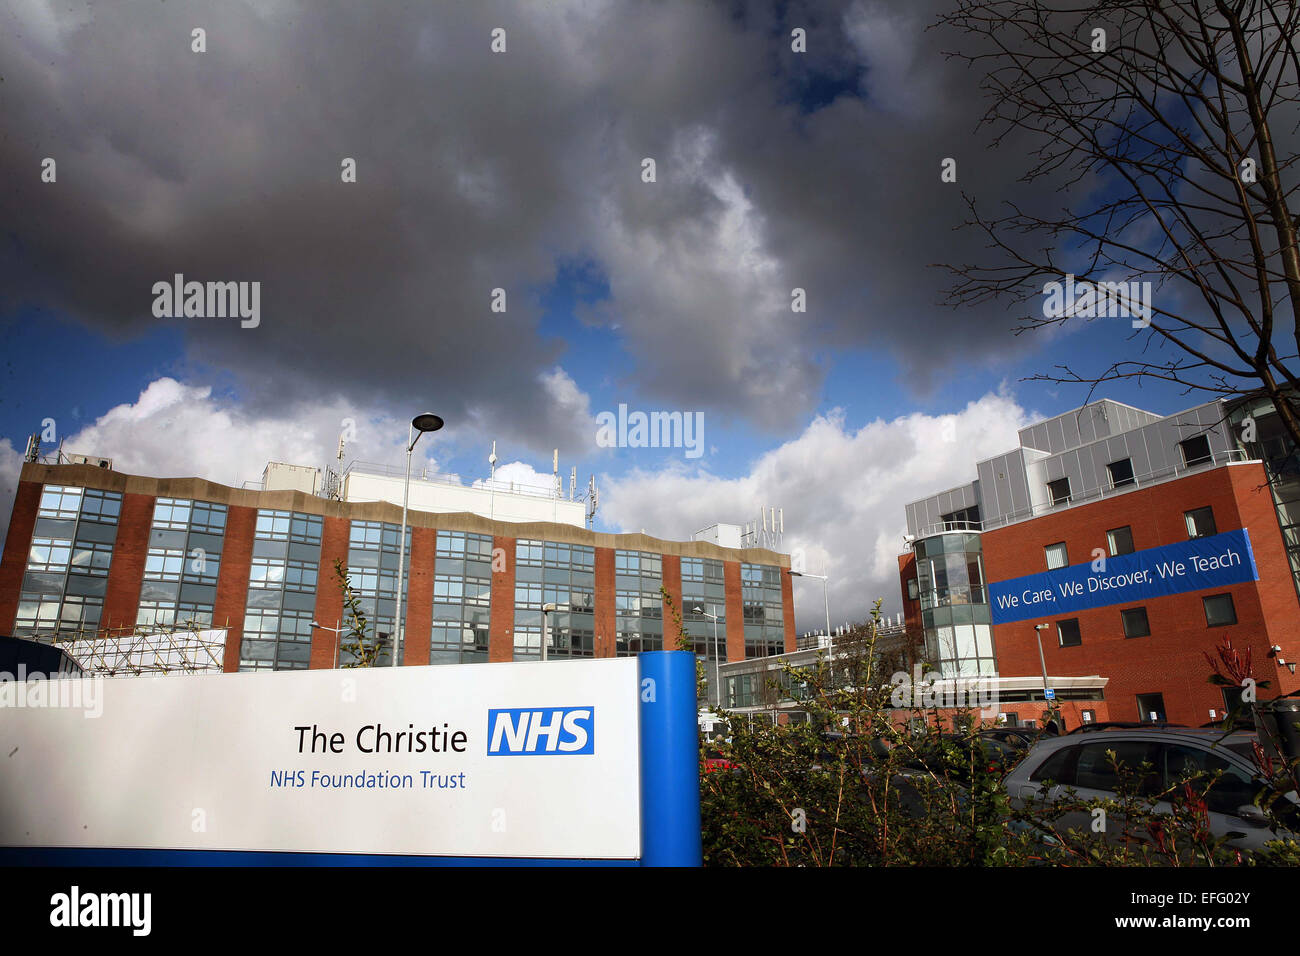 General view of The Christie Hospital, Withington, Manchester - Stock Image